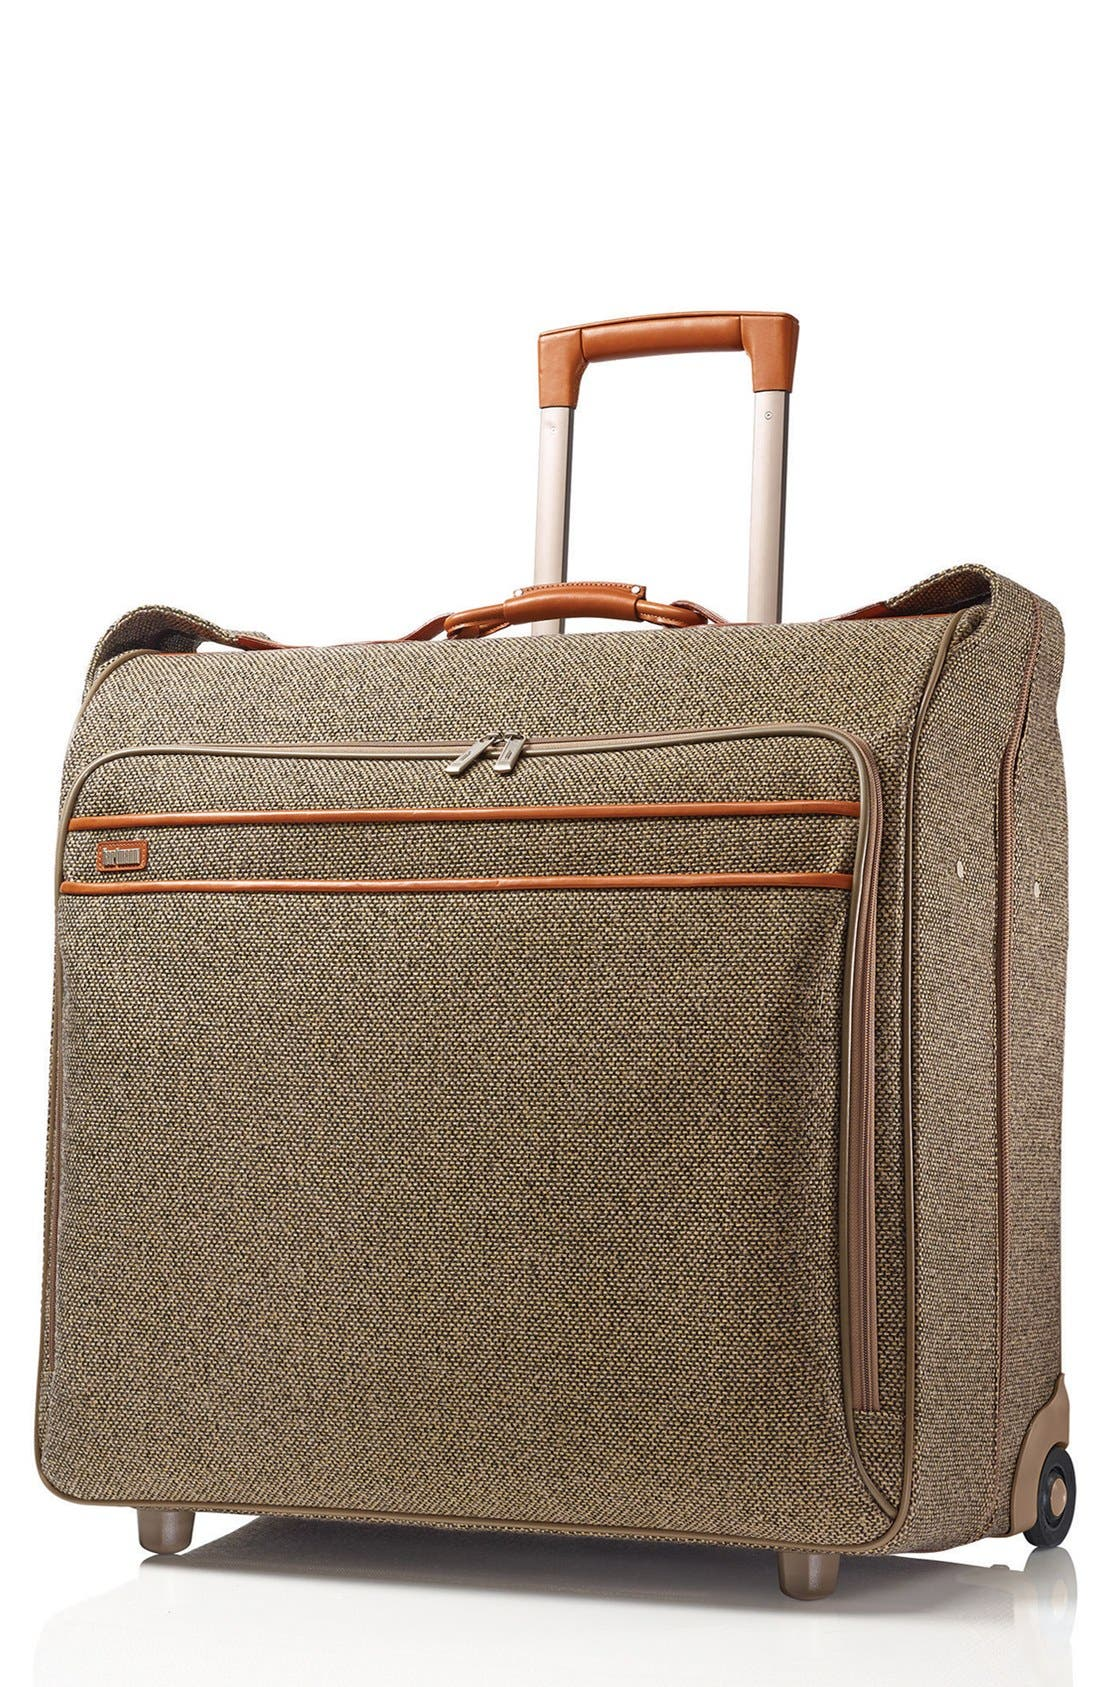 Main Image - Hartmann 'Tweed Belting' Wheeled Garment Bag